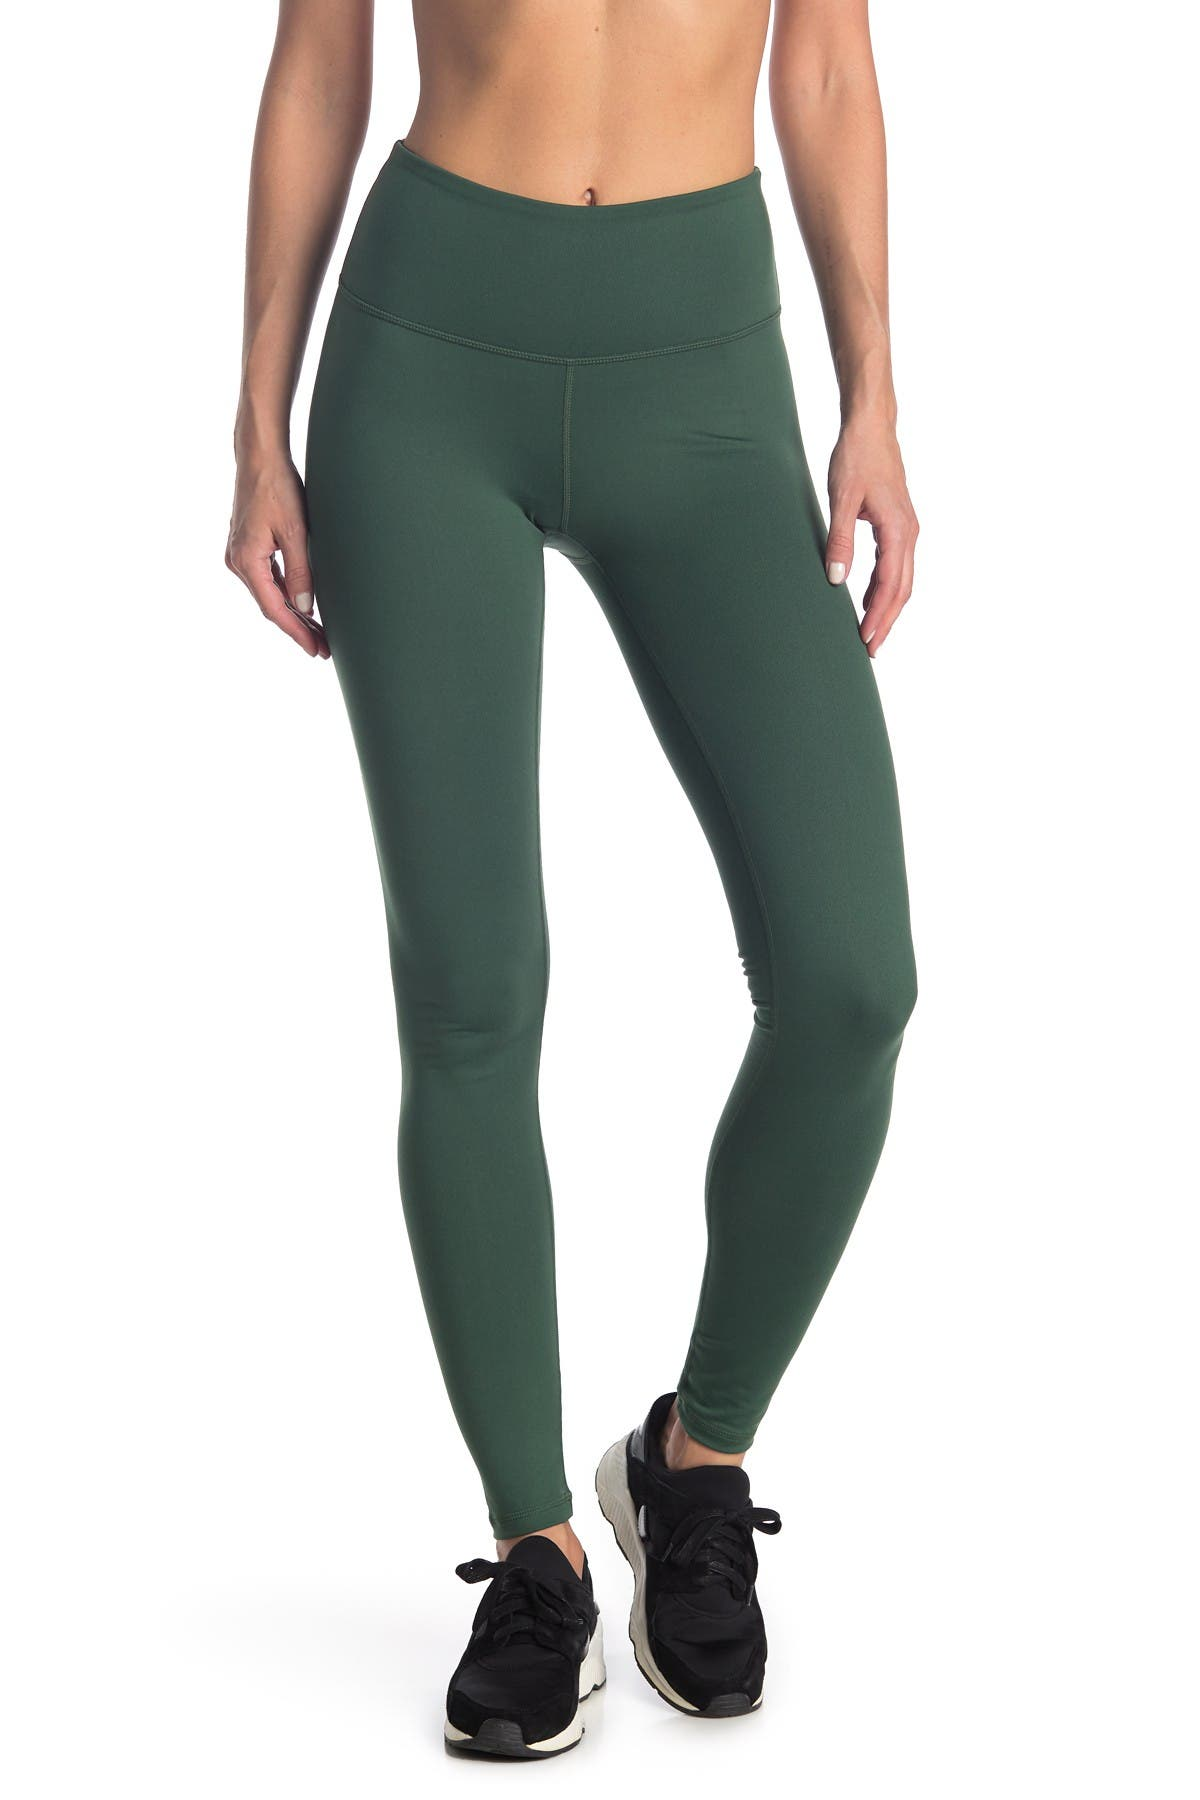 Image of Z By Zella High Waist Daily Leggings